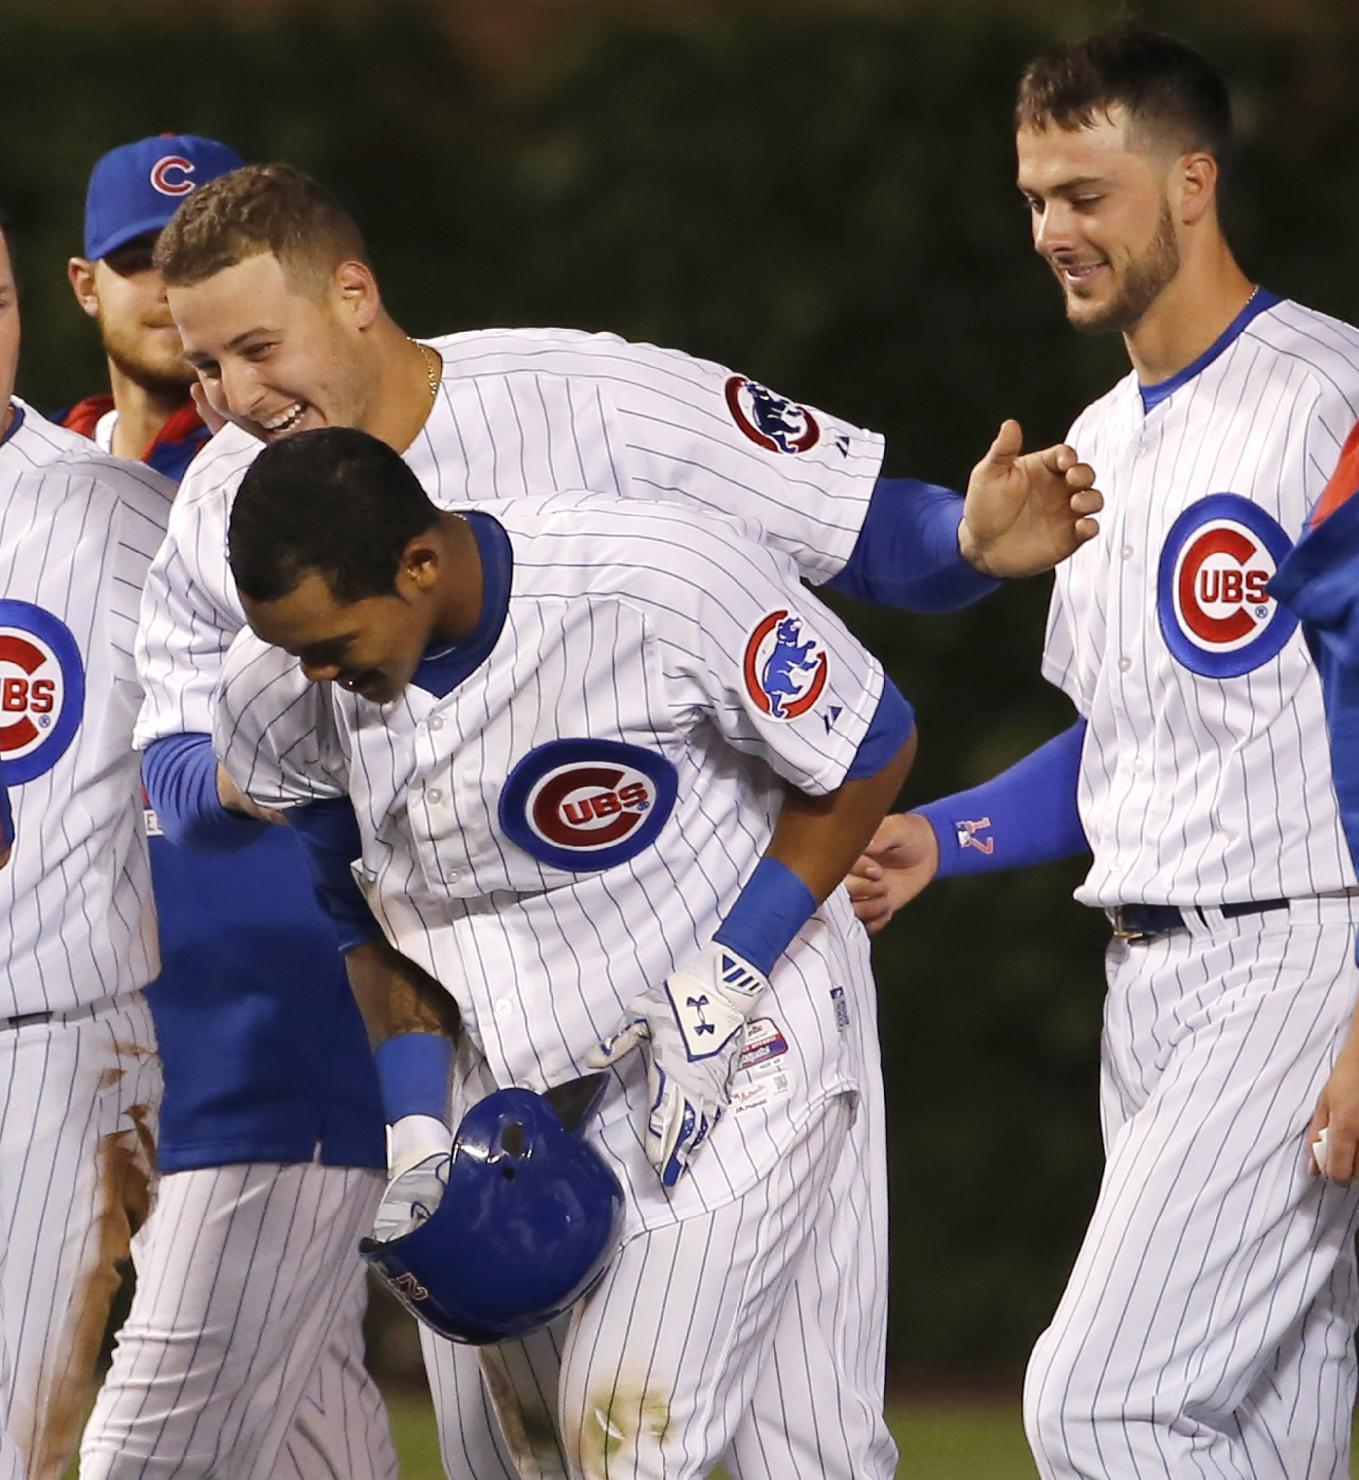 Russell double gives Cubs 3-2 win over Nationals